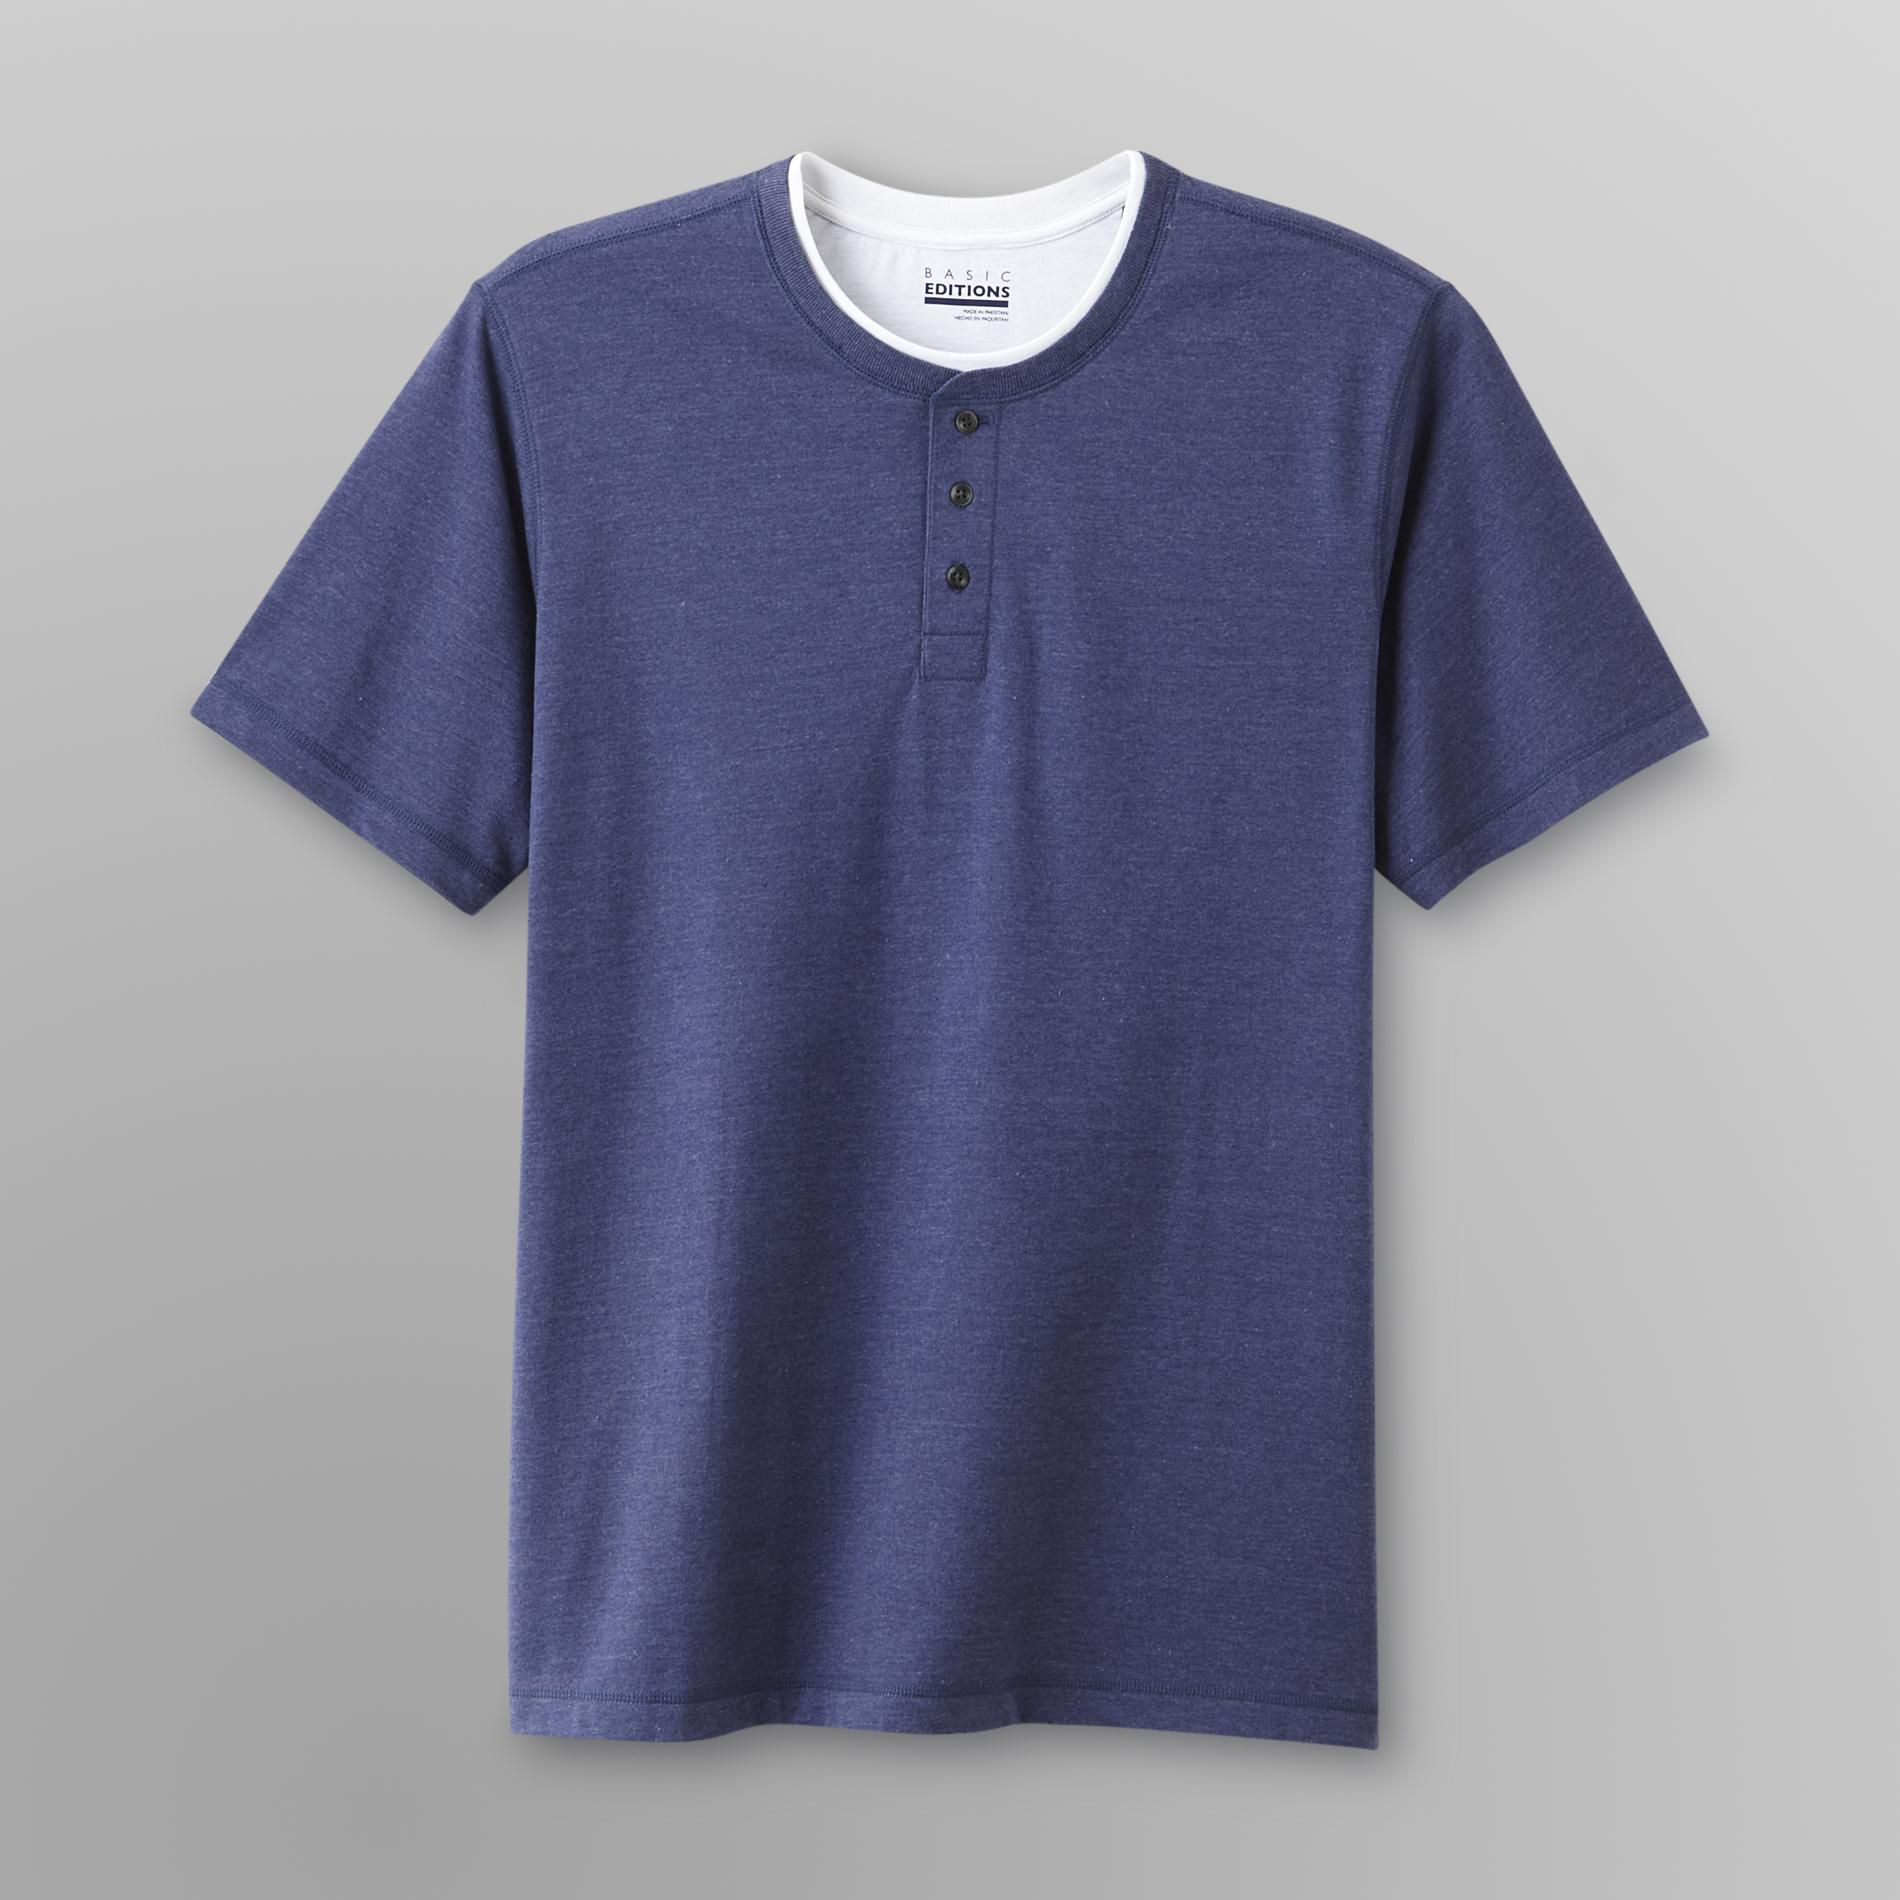 Basic Editions Men's Henley - Heather at Kmart.com